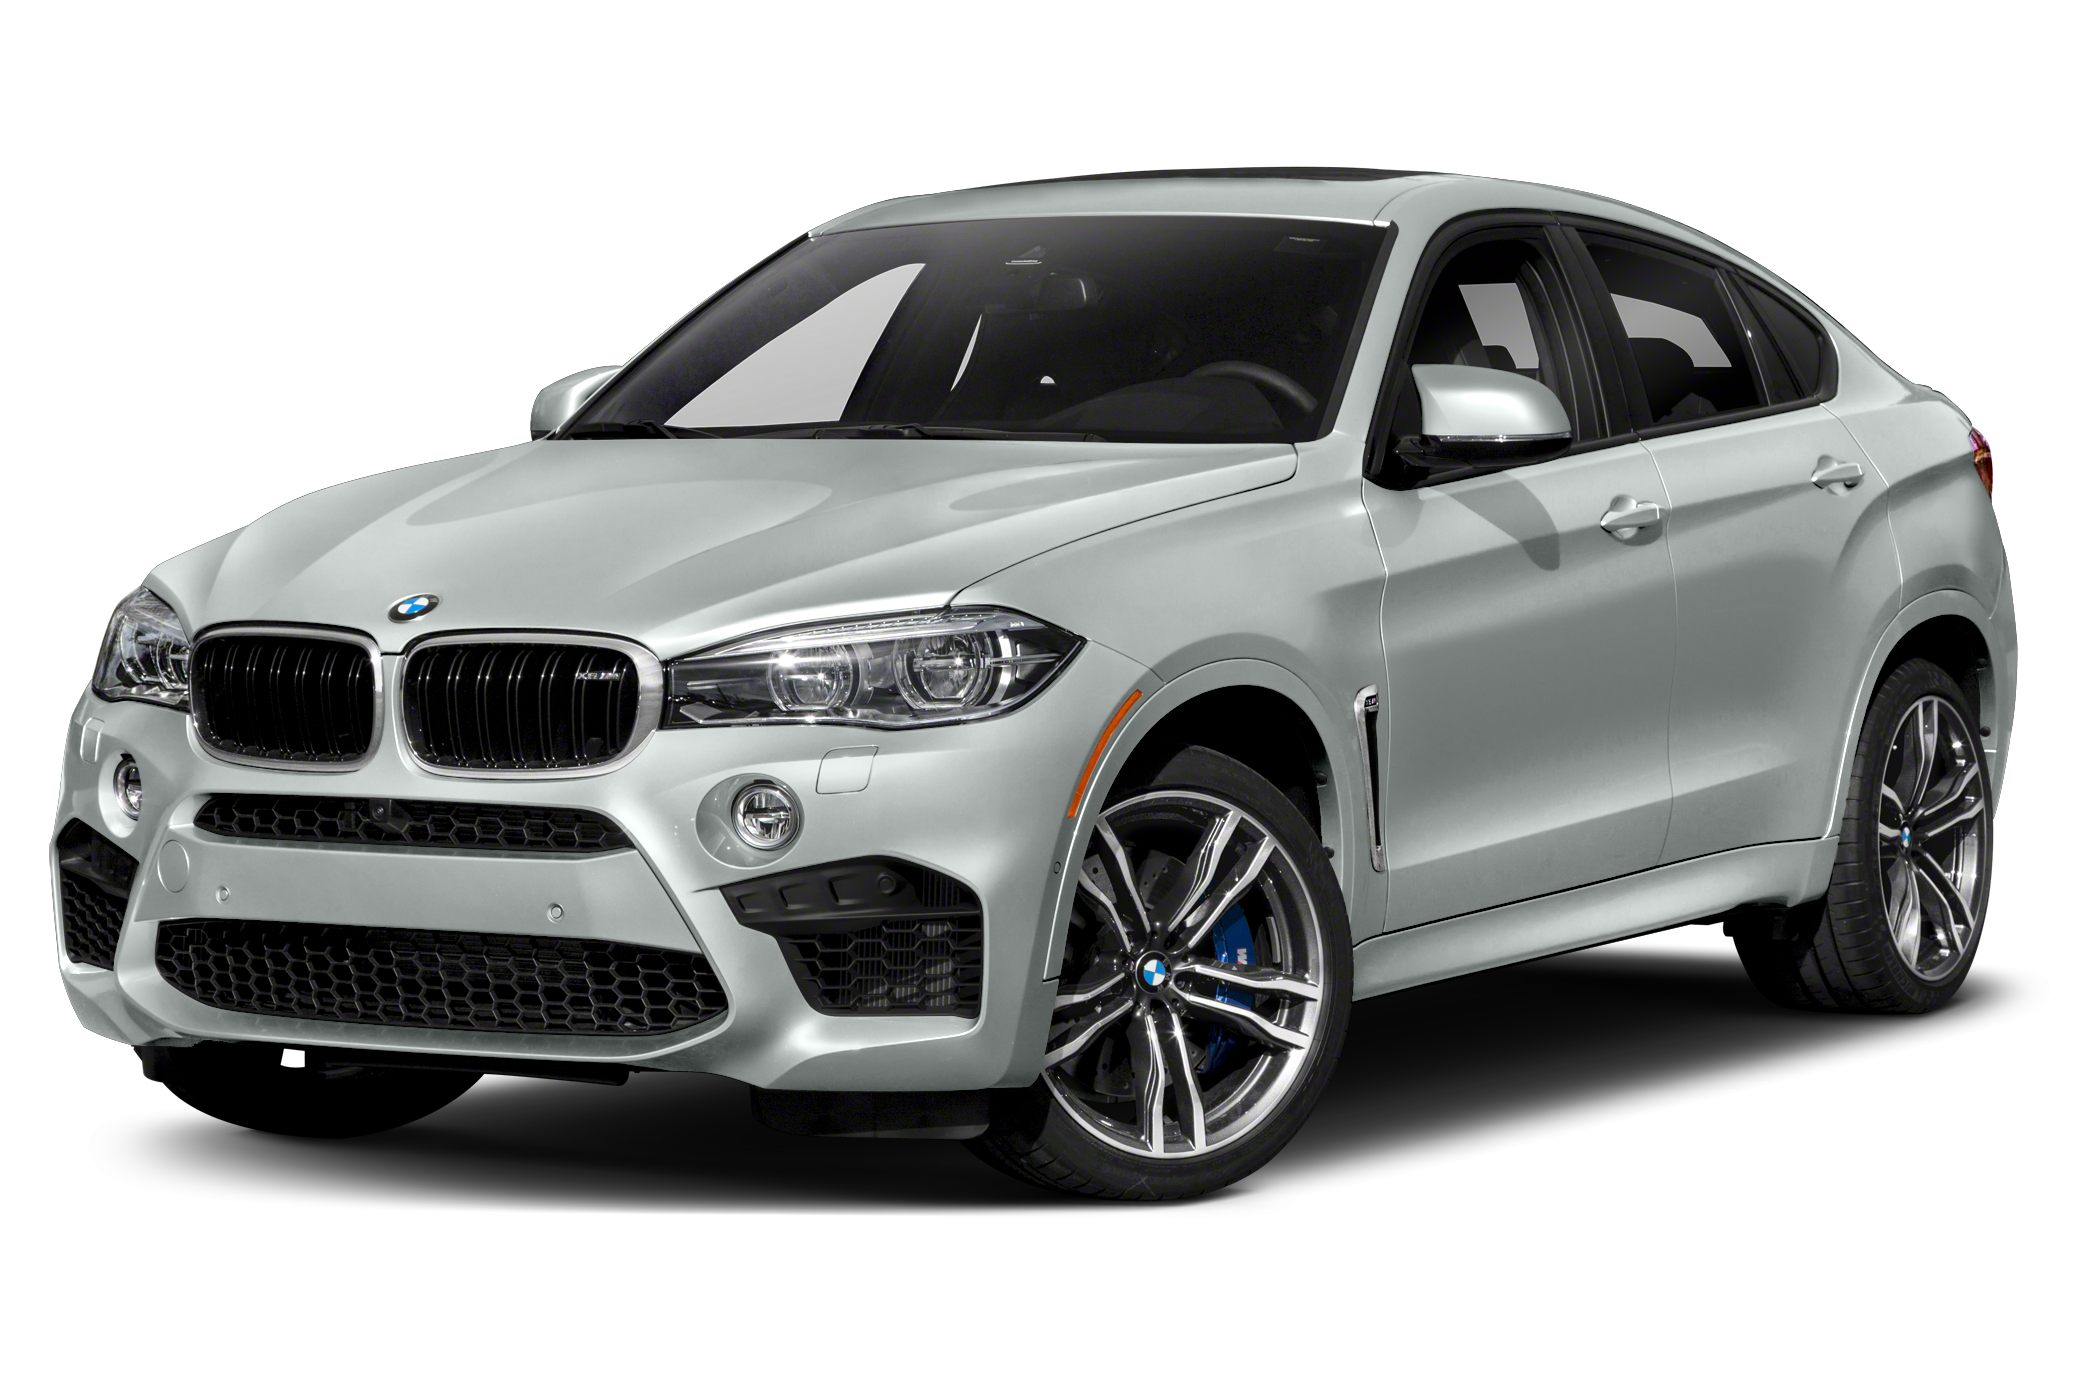 2019 Bmw X6 M Pricing And Specs